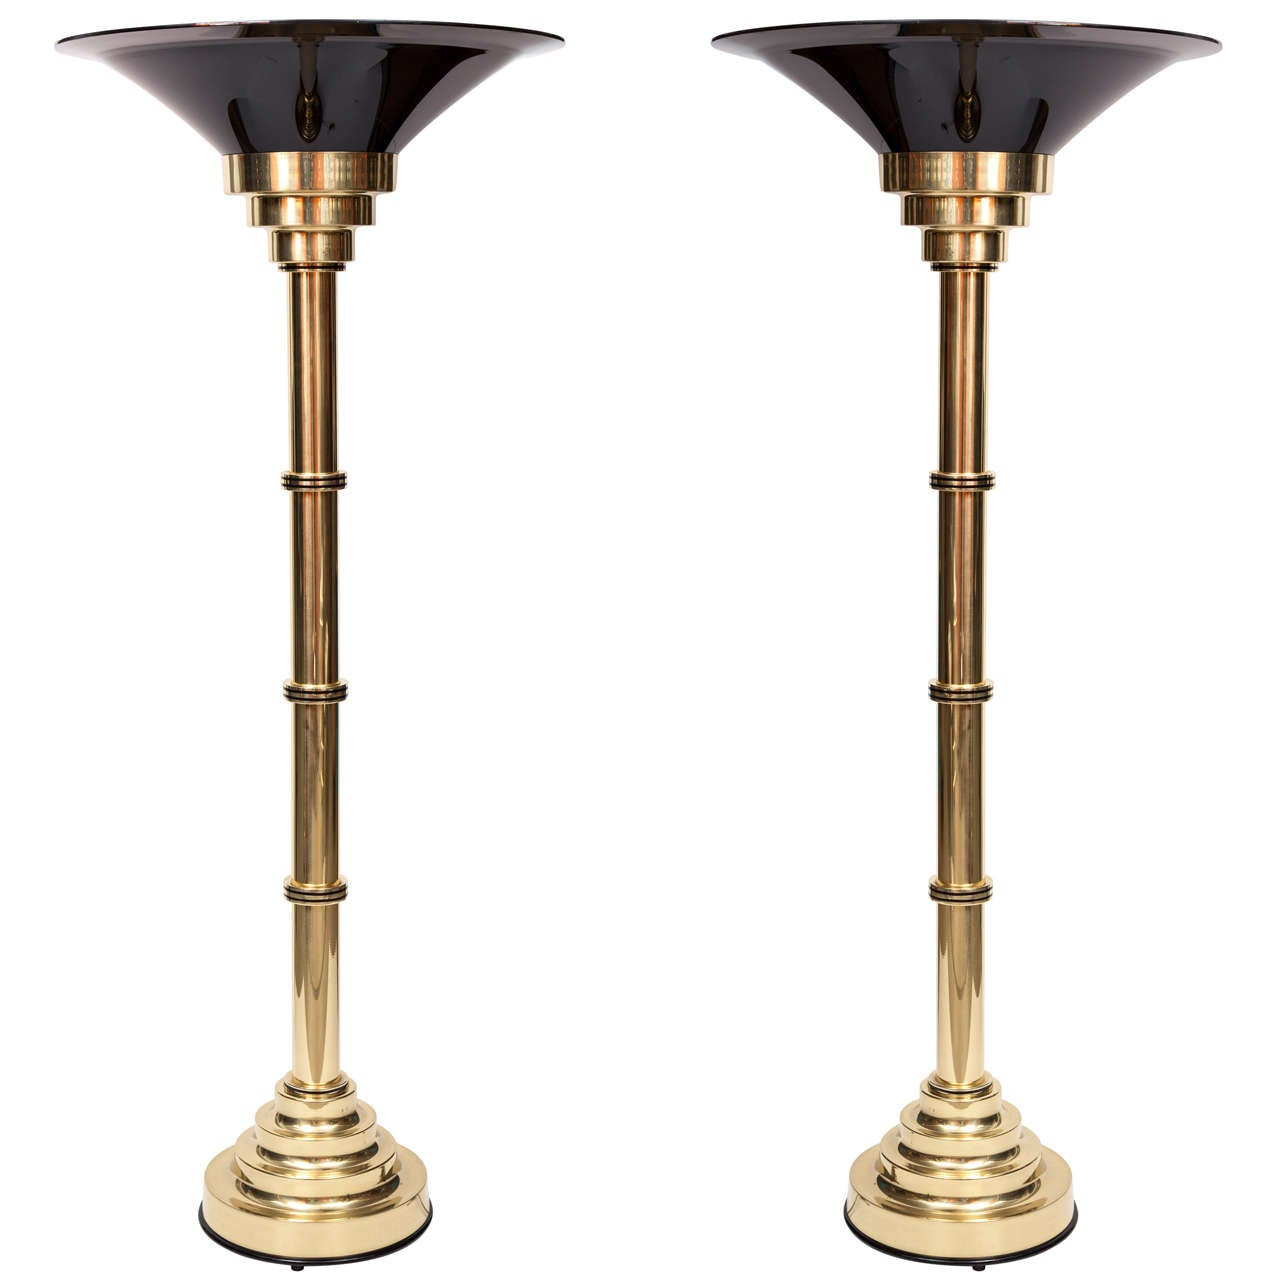 Pair of tall brass floor lamps c 1970 italy at 1stdibs for 1970s floor lamps